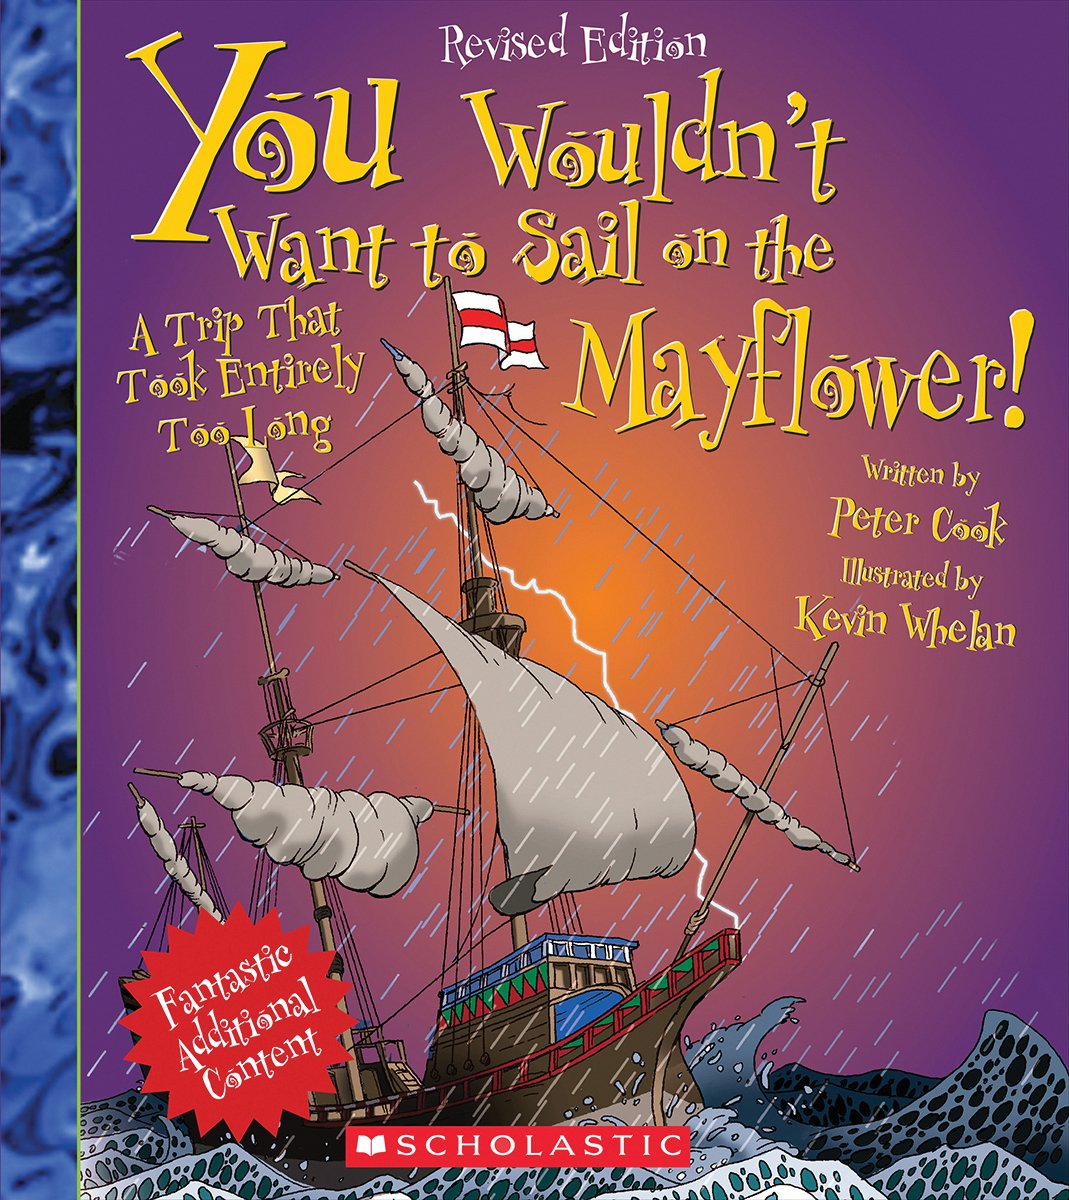 You Wouldn't Want to Sail on the Mayflower! (Revised Edition